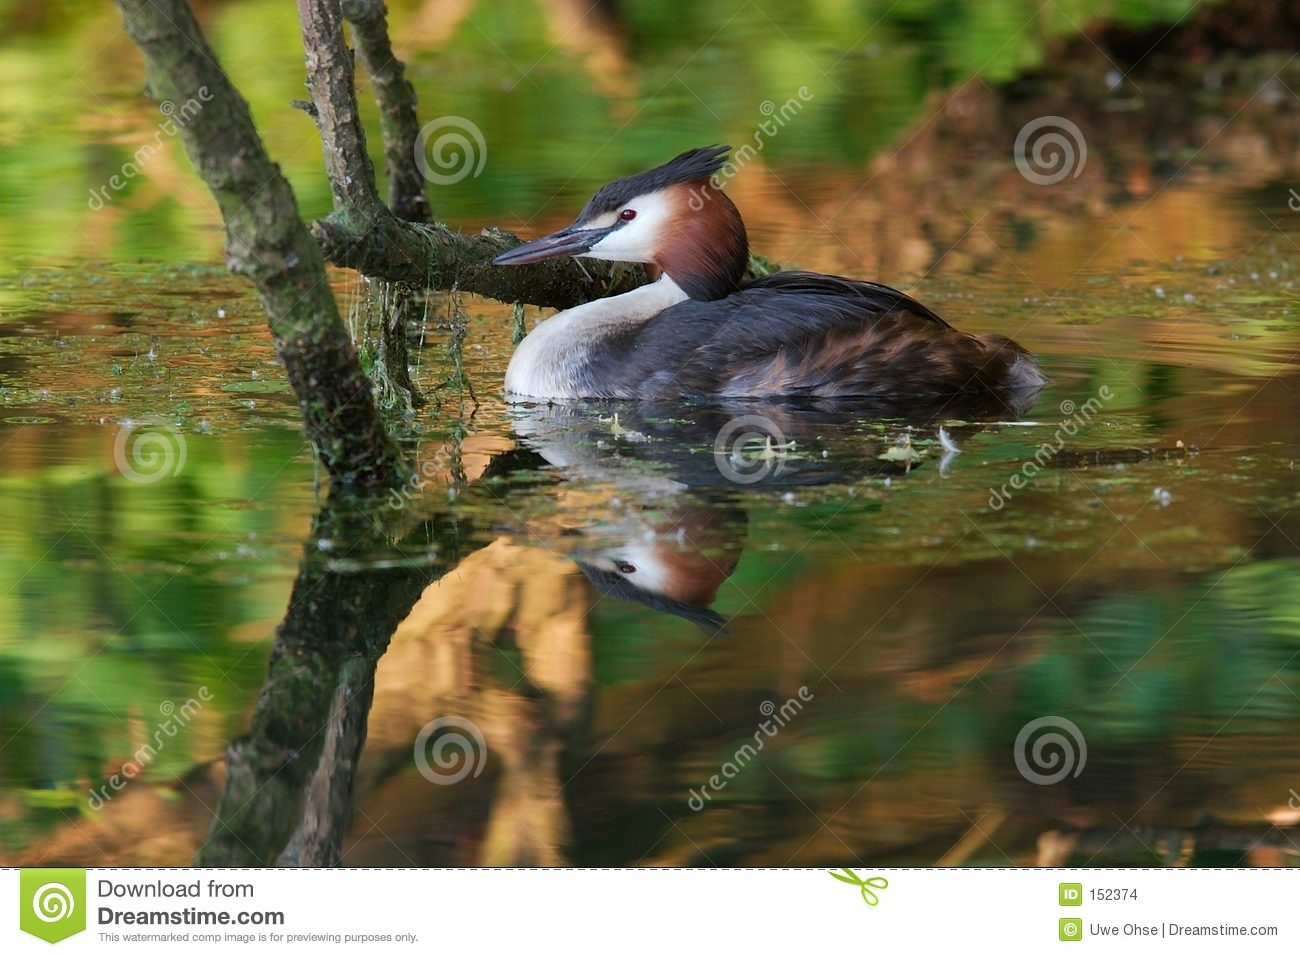 Grebe in Reflections 1